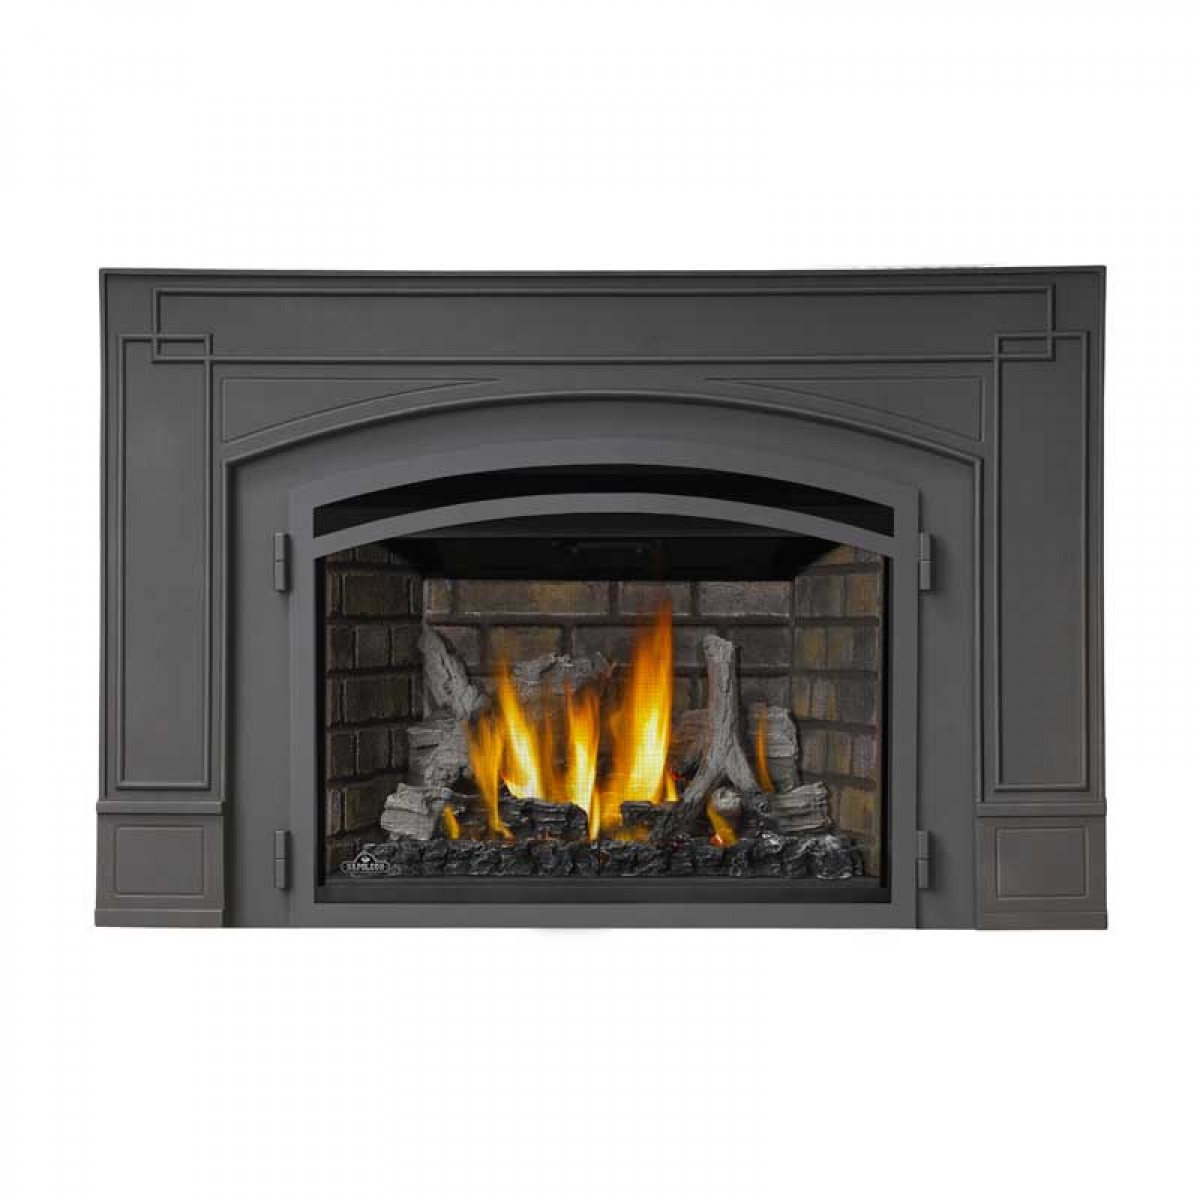 Napoleon ir3 infrared series gas fireplace insert for Fireplace insert options